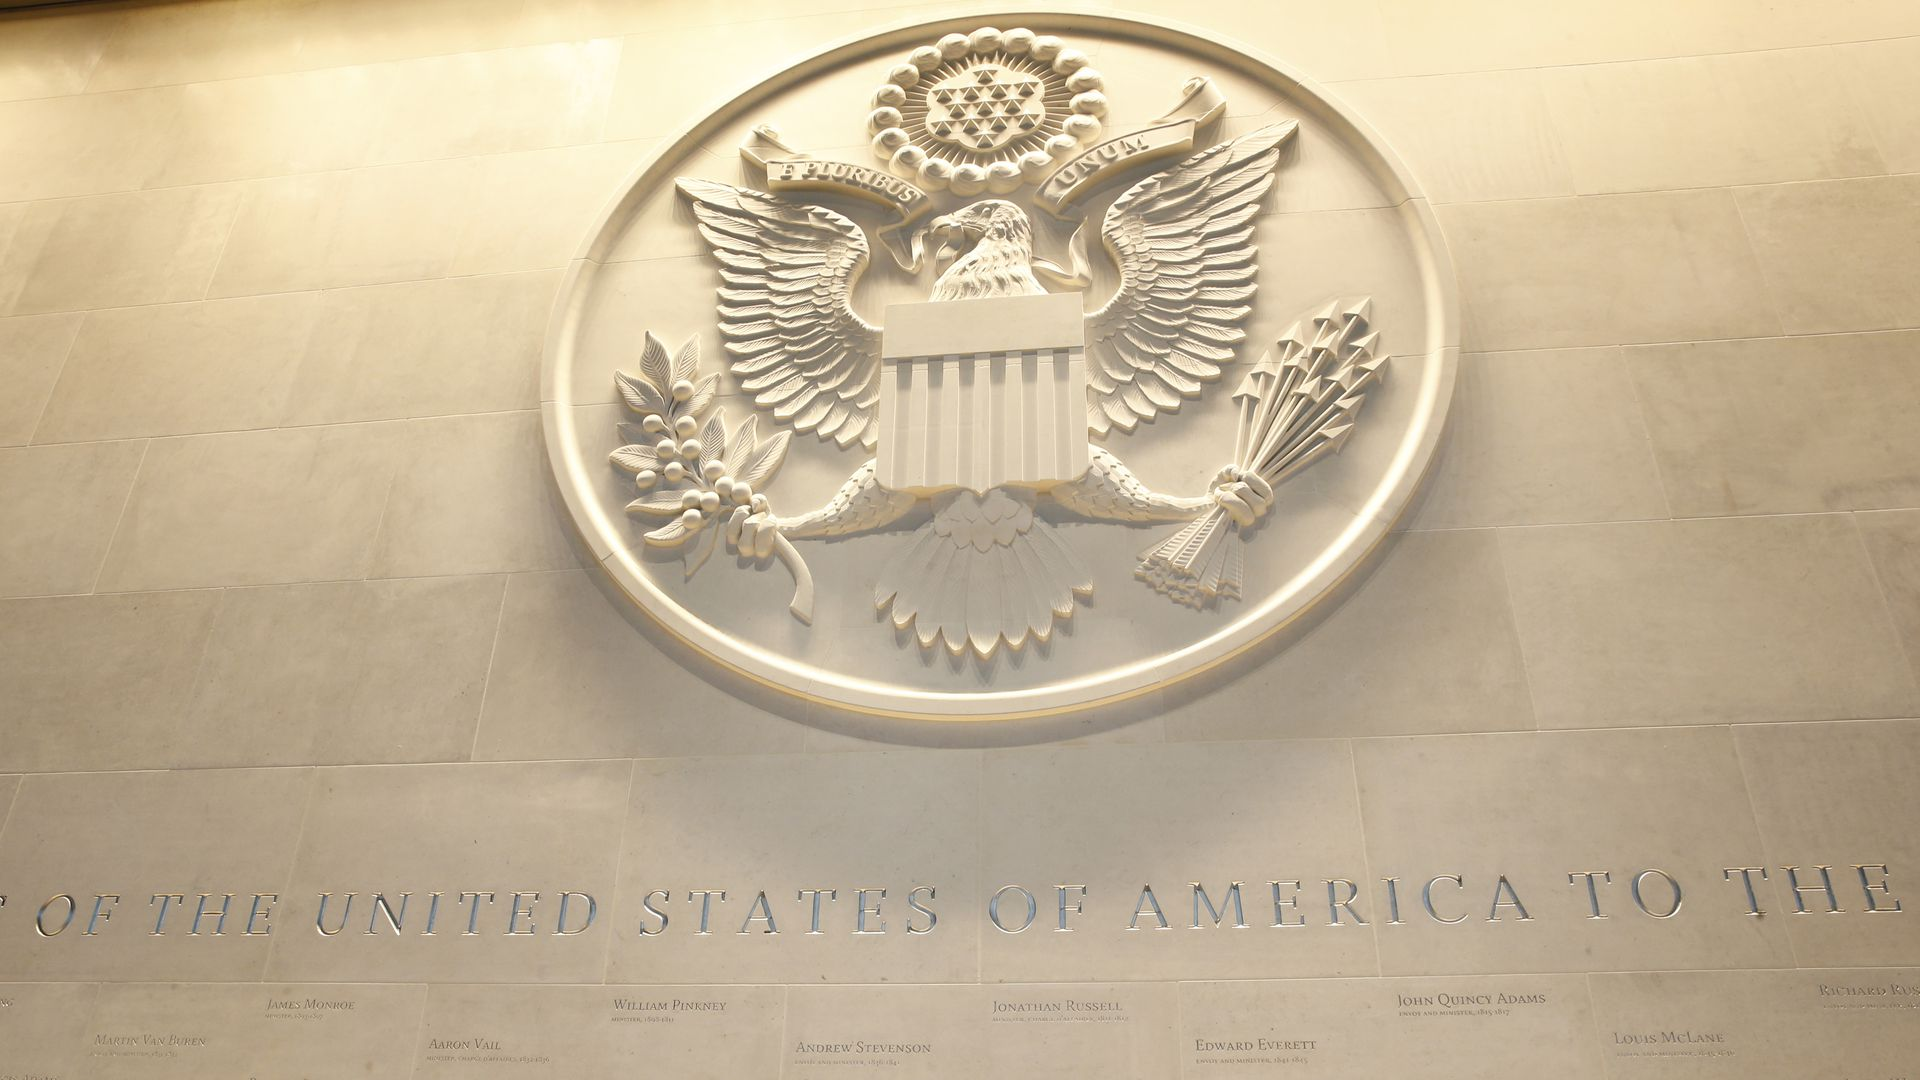 A photo of the State Department seal